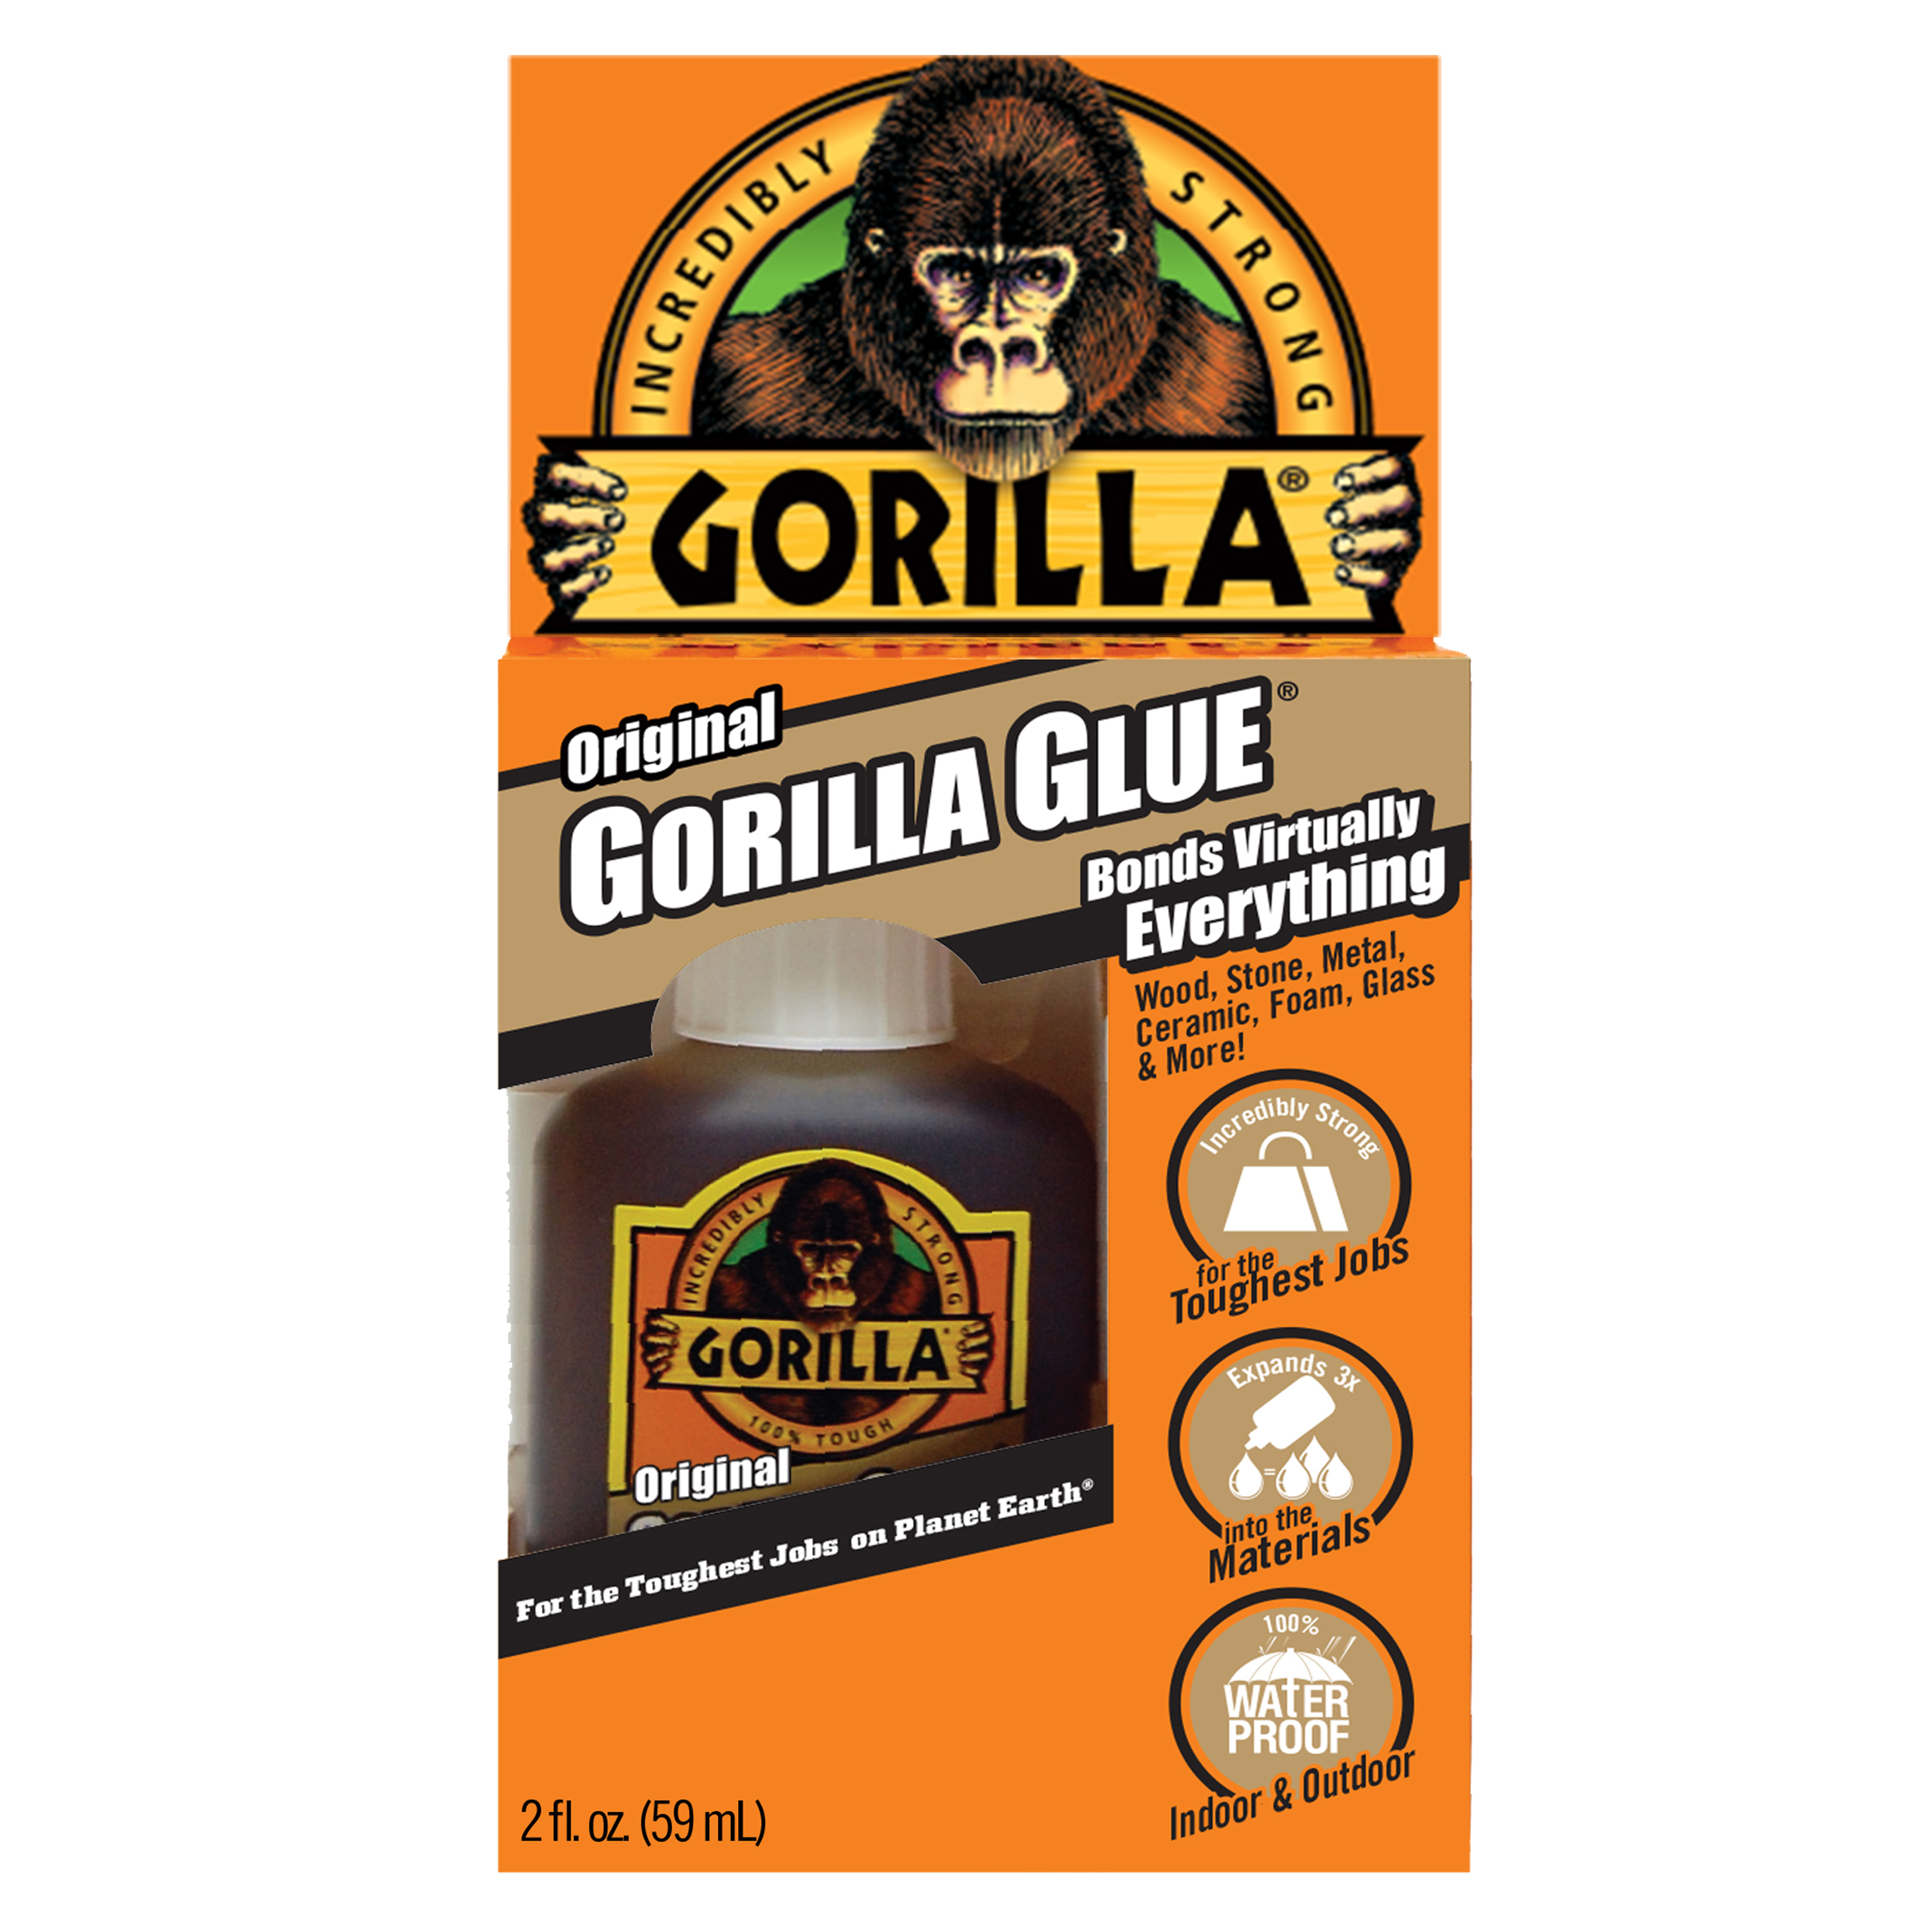 Gorilla Original Glue, 2 oz.